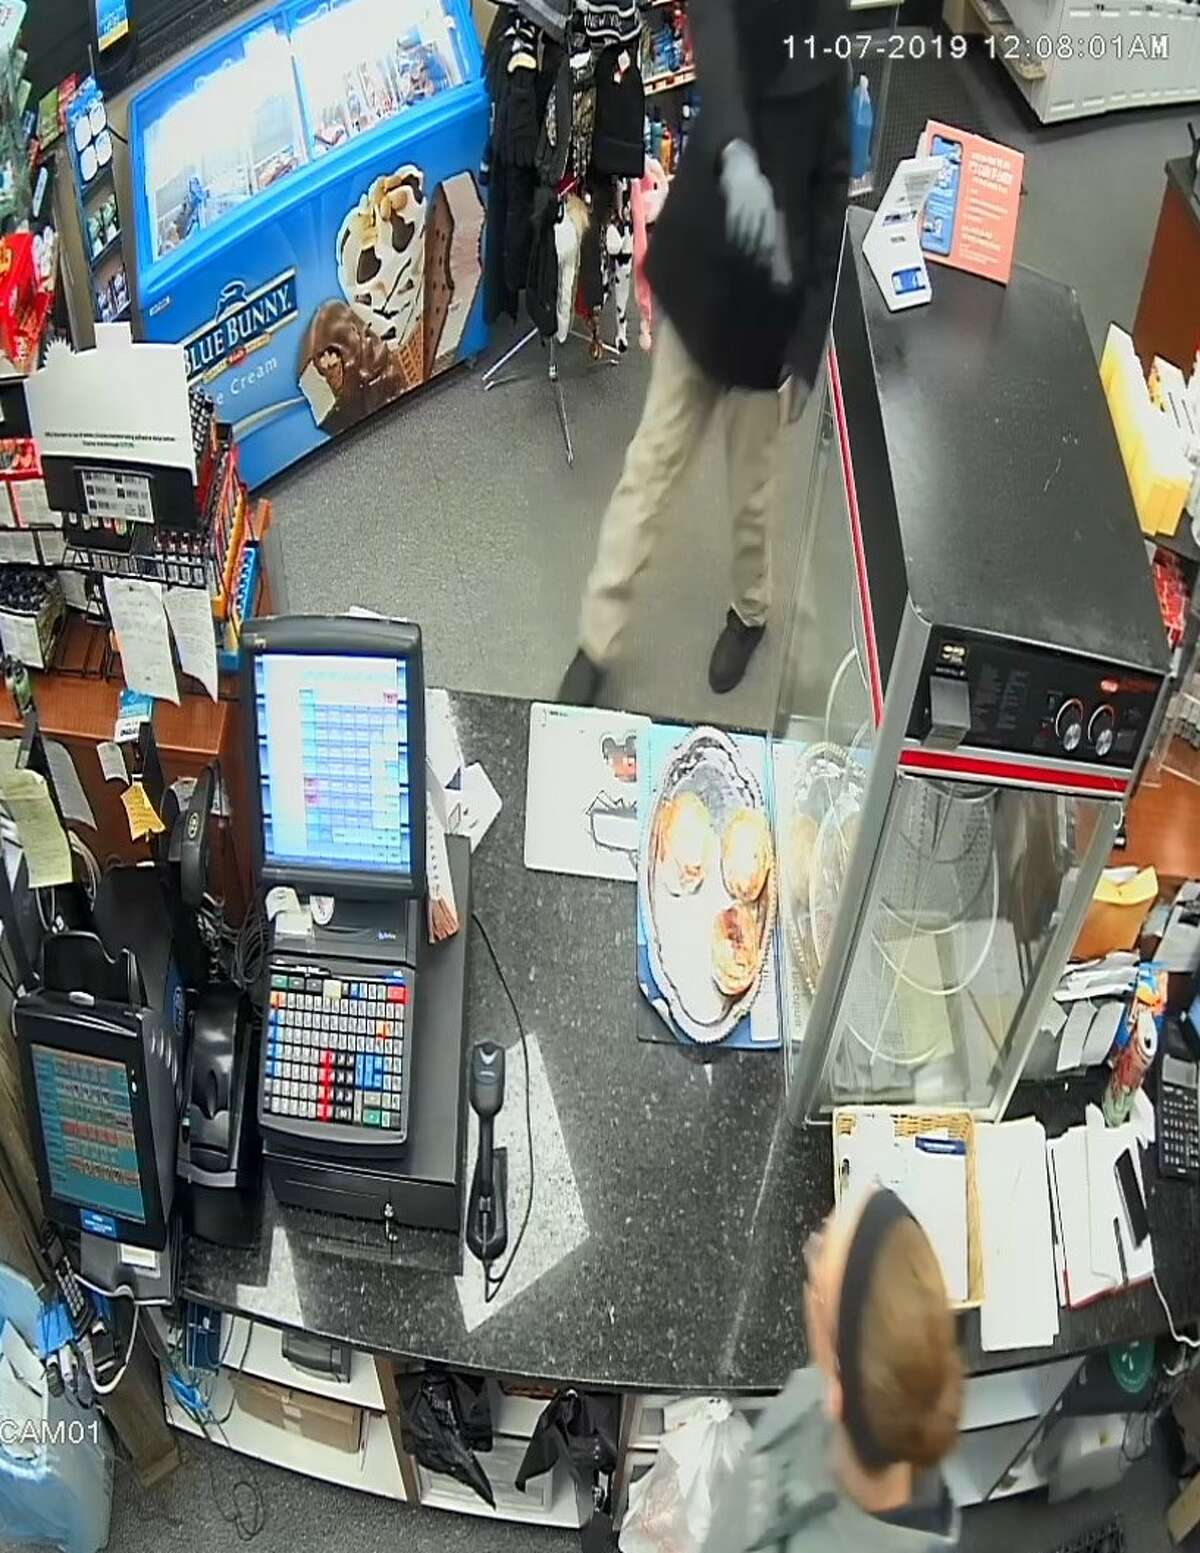 Scotia Police released this image as part of their investigation into an armed robbery Wednesday at the Citgo station on Sacandaga Road.